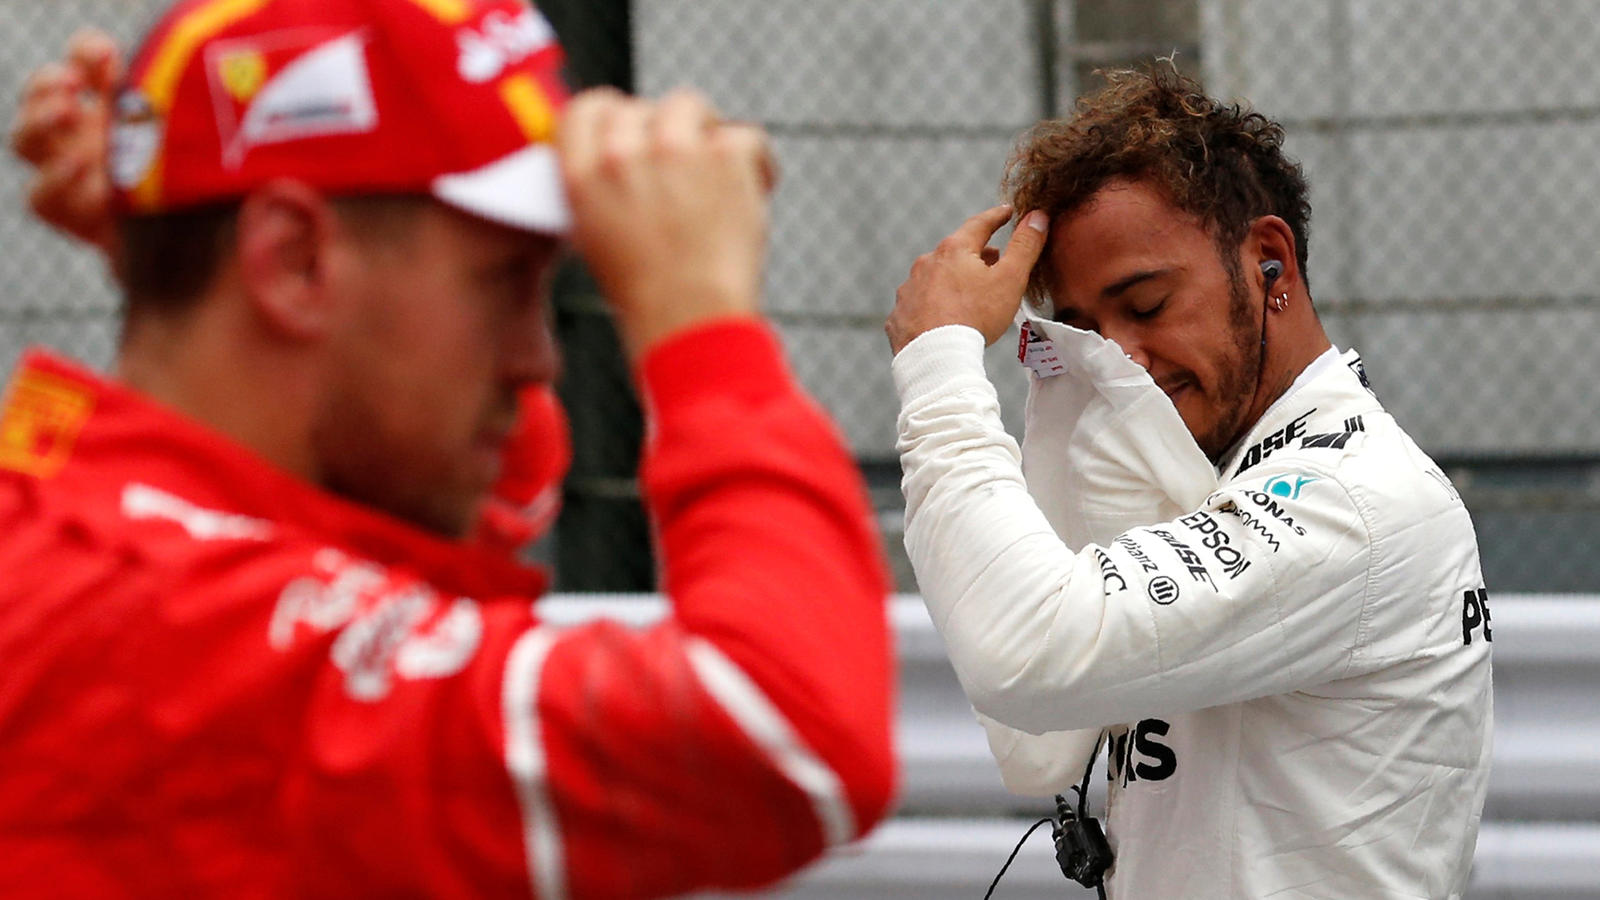 Formula One F1 - Japanese Grand Prix 2017 - Suzuka Circuit, Japan - October 7, 2017. Mercedes' Lewis Hamilton of Britain reacts after getting pole position in qualifying next to Ferrari's Sebastian Vettel of Germany. REUTERS/Toru Hanai